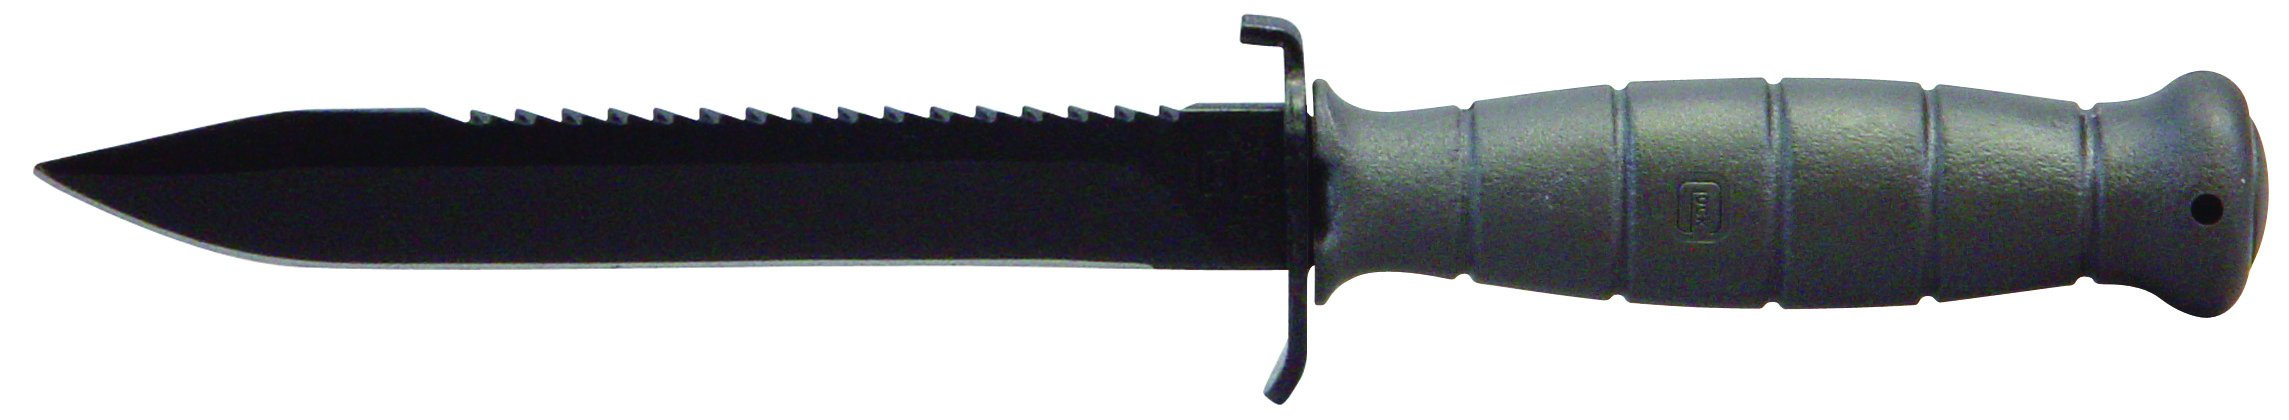 Glock OEM Field Knife 6.5'' Fixed Blade with Root Saw, Grey